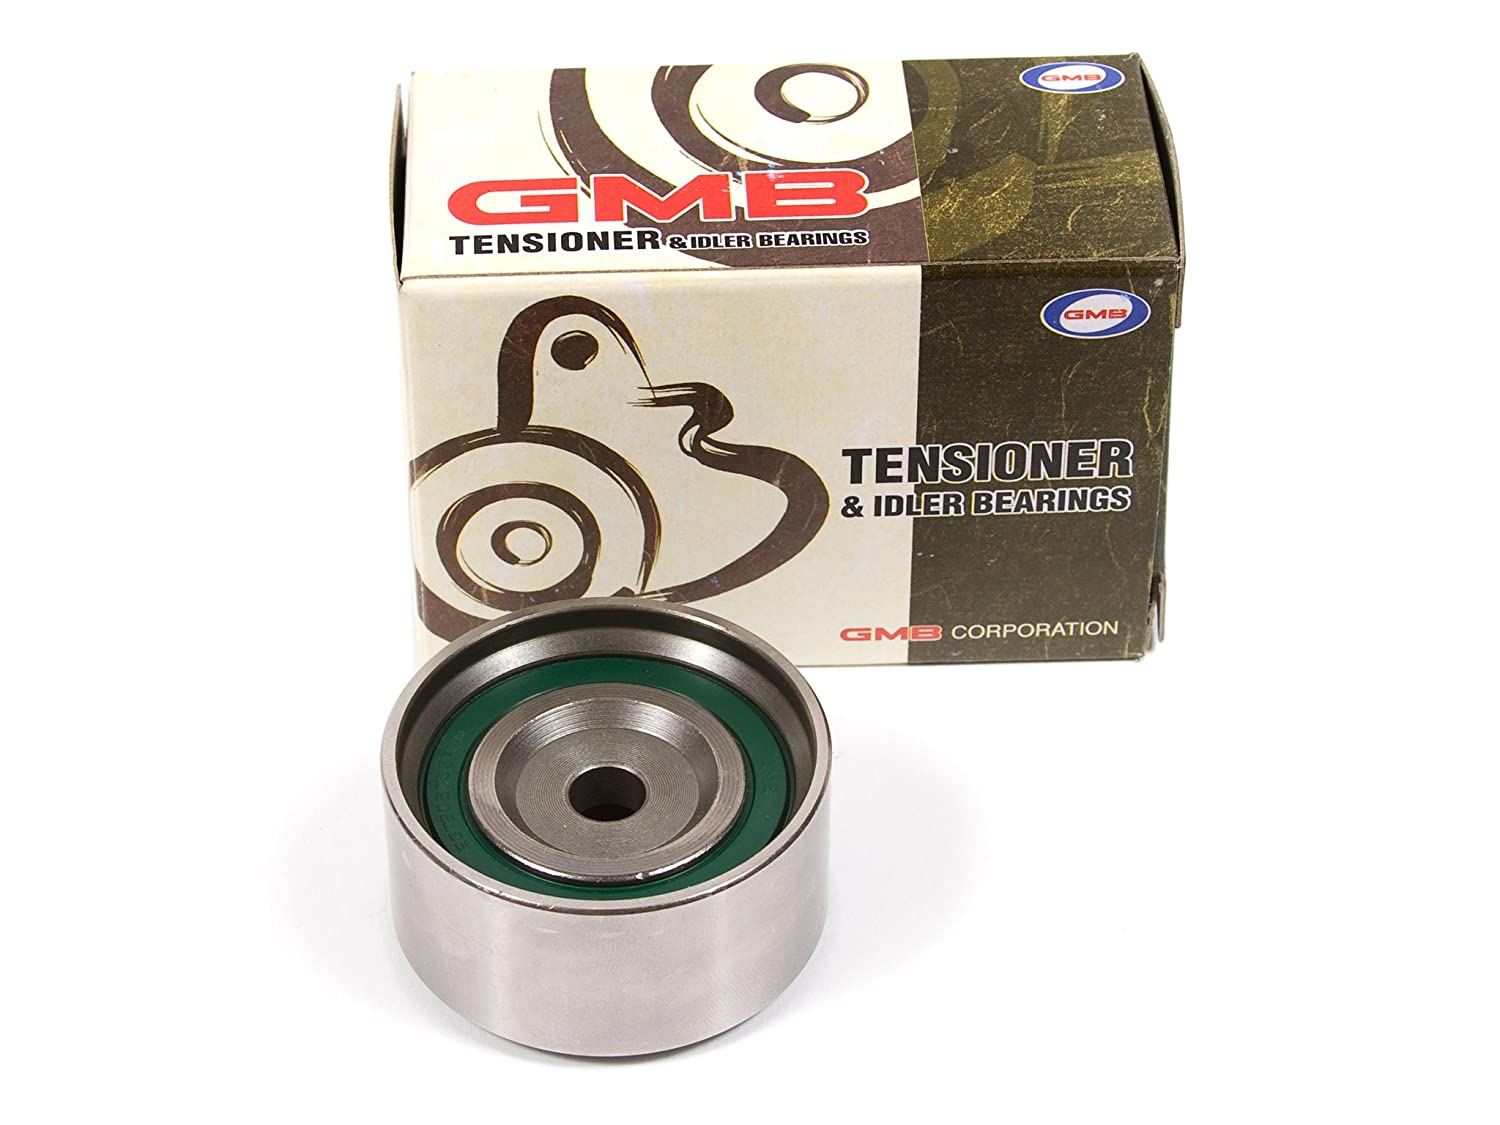 Amazon.com: Evergreen TBK134WPT Fits Mazda Ford F2 Turbo & Non-Turbo Timing Belt Kit w/Water Pump: Automotive